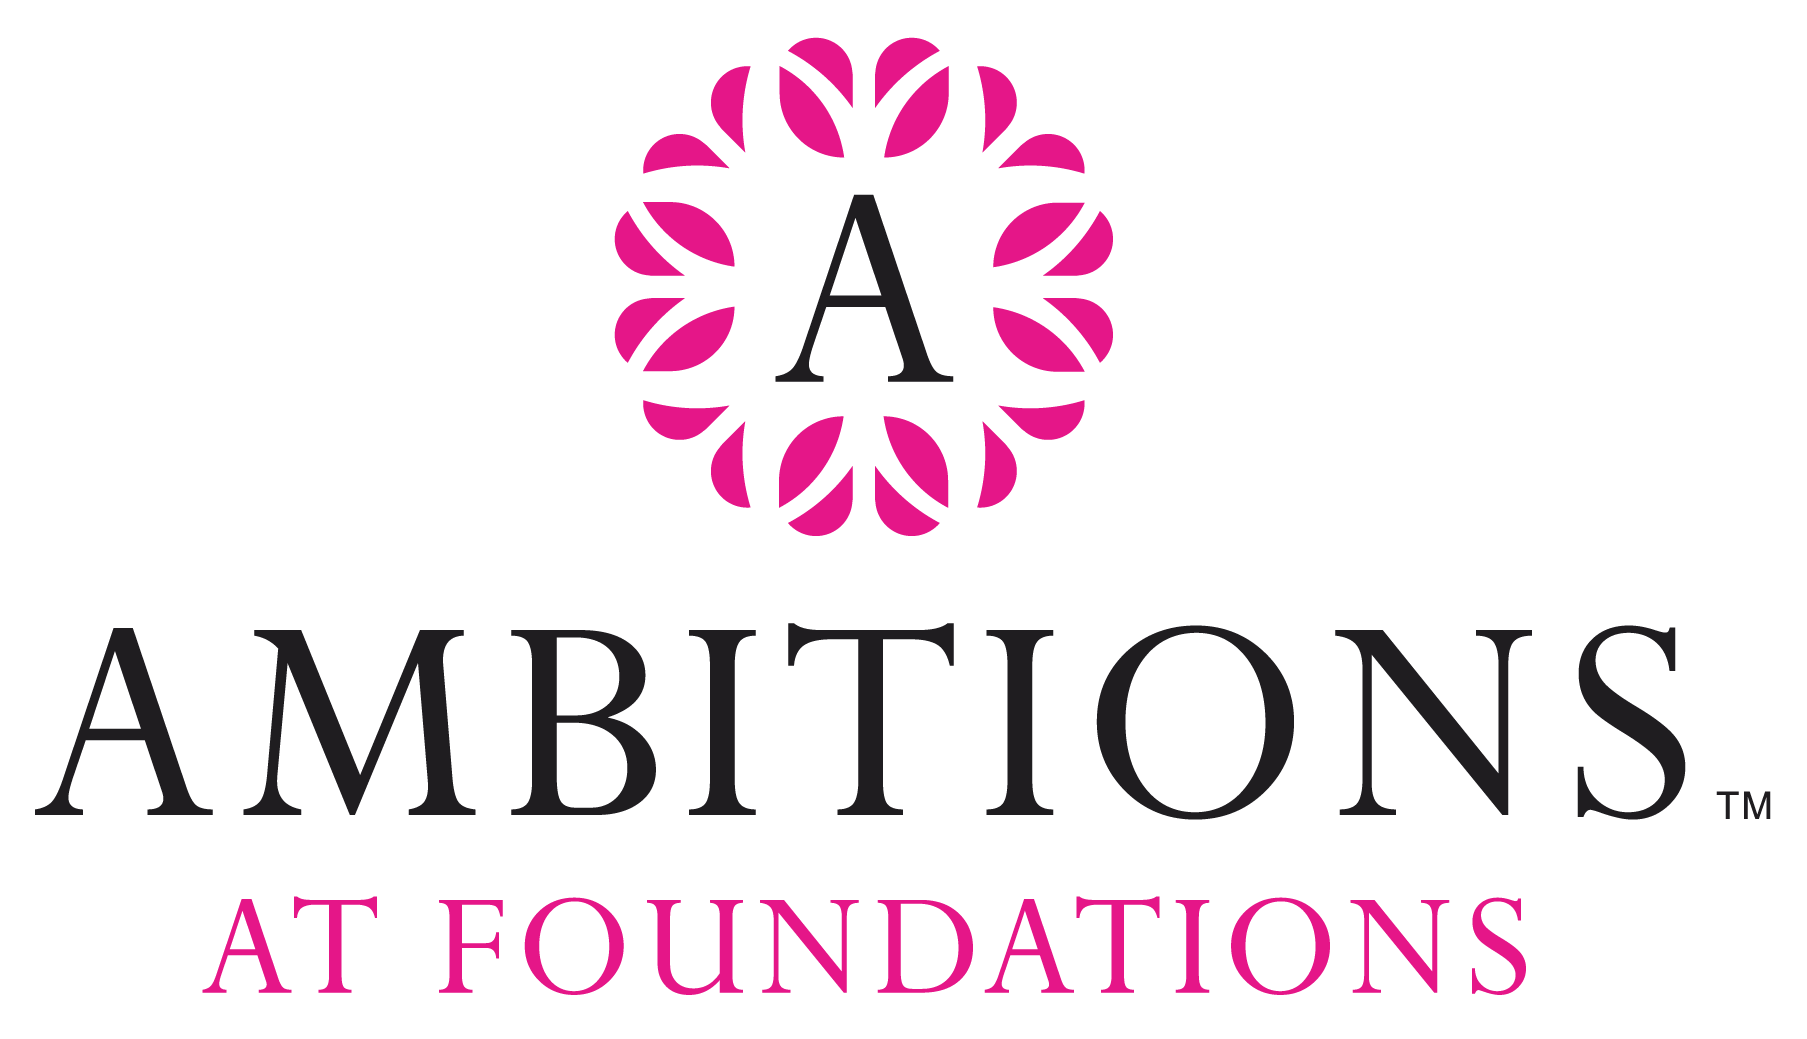 Pink and Black Ambitions at Foundations Logo